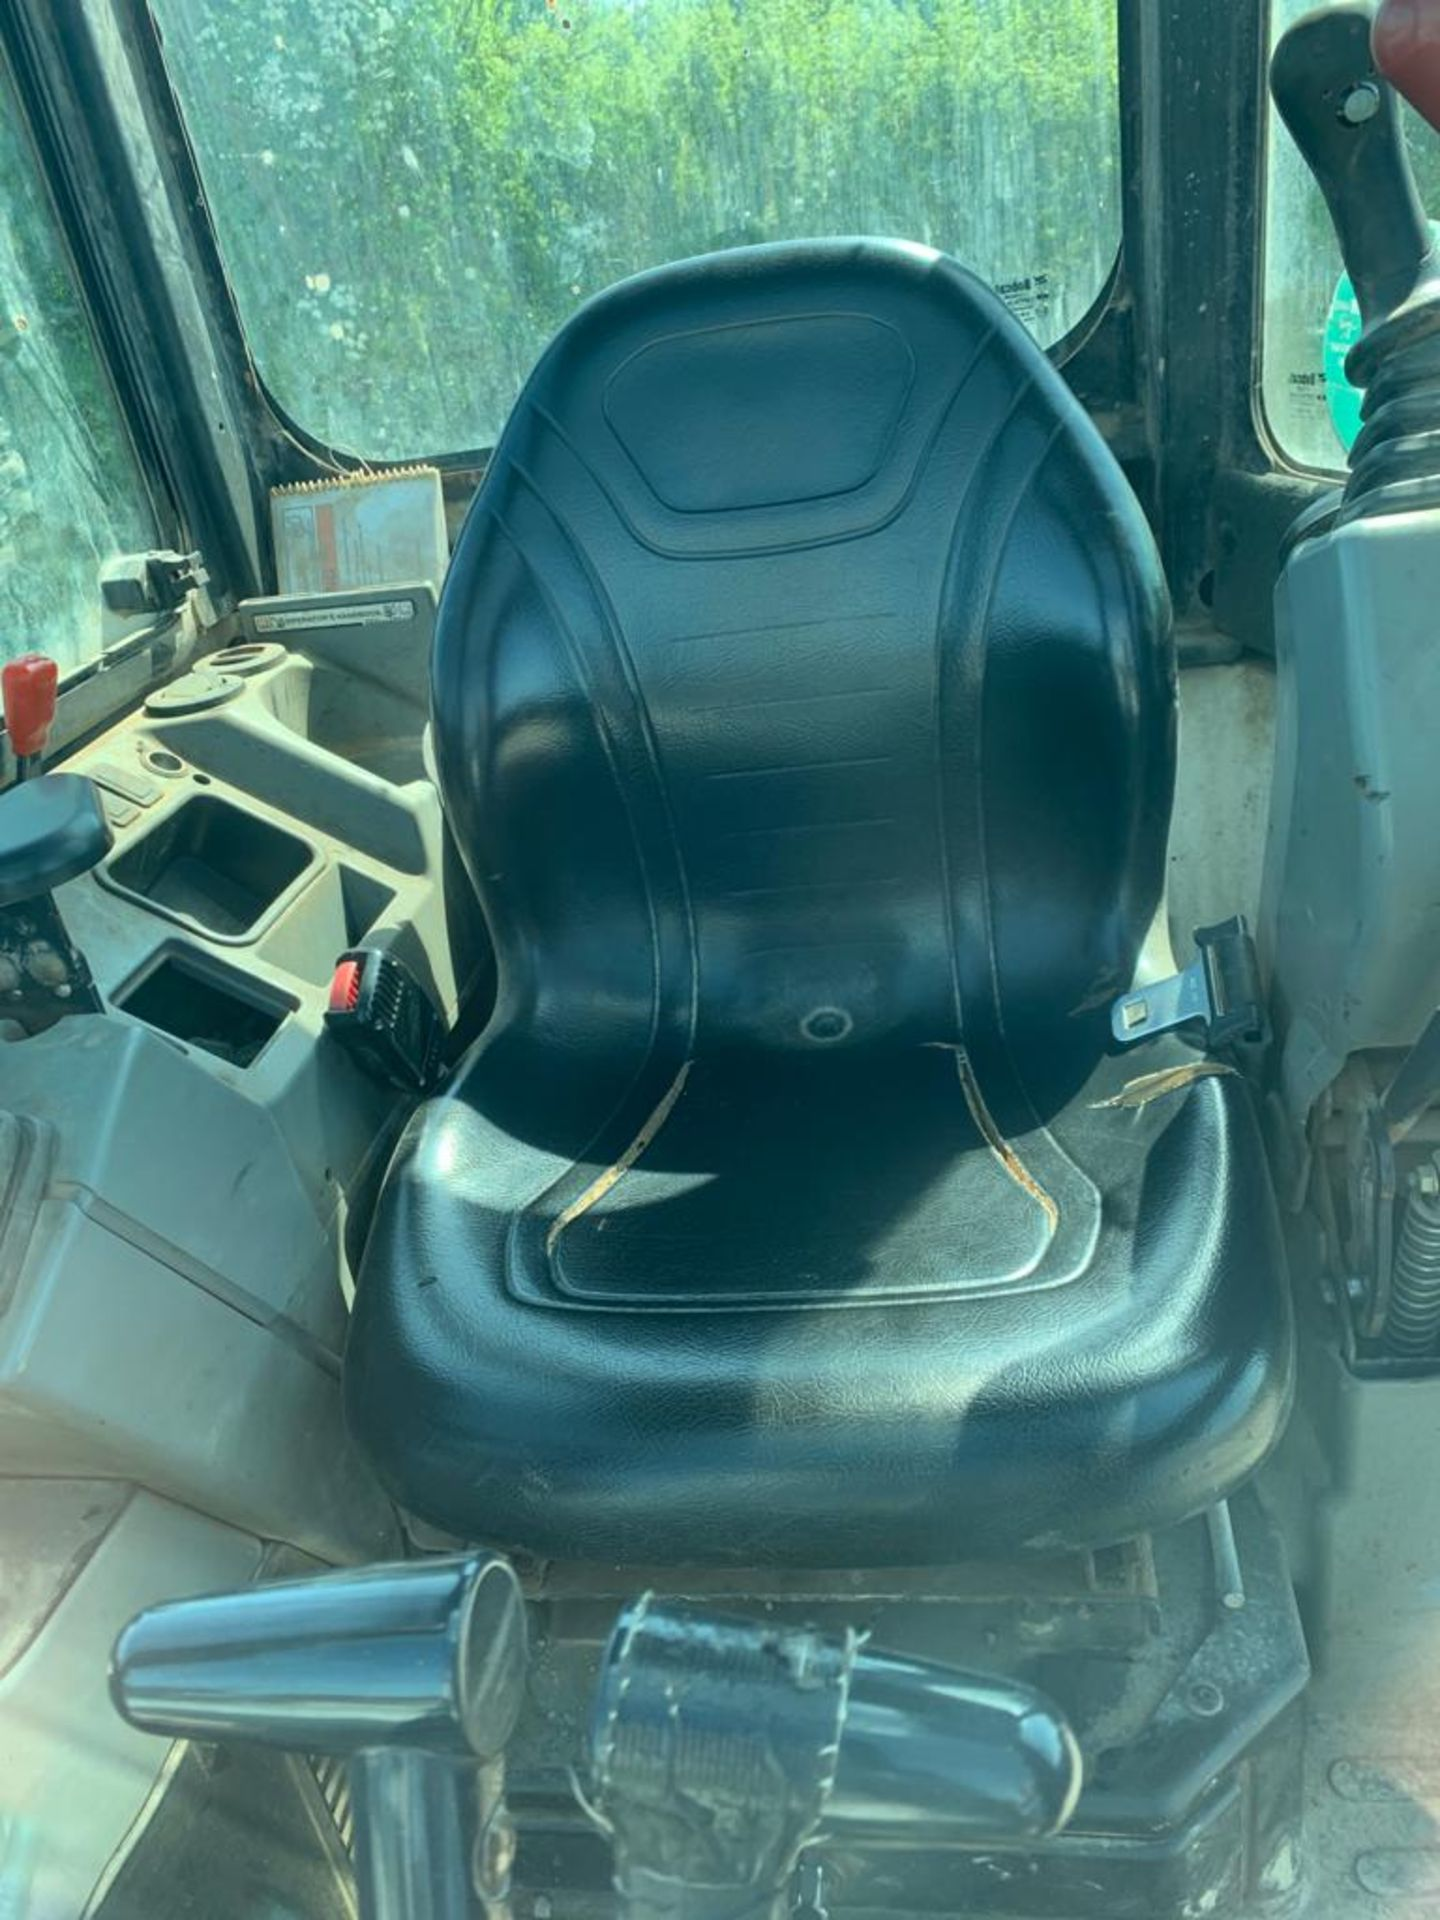 2014 BOBCAT E25 RUBBER TRACKED COMPACT EXCAVATOR / DIGGER, 15.3 KW, MASS 2516 KG *PLUS VAT* - Image 15 of 19